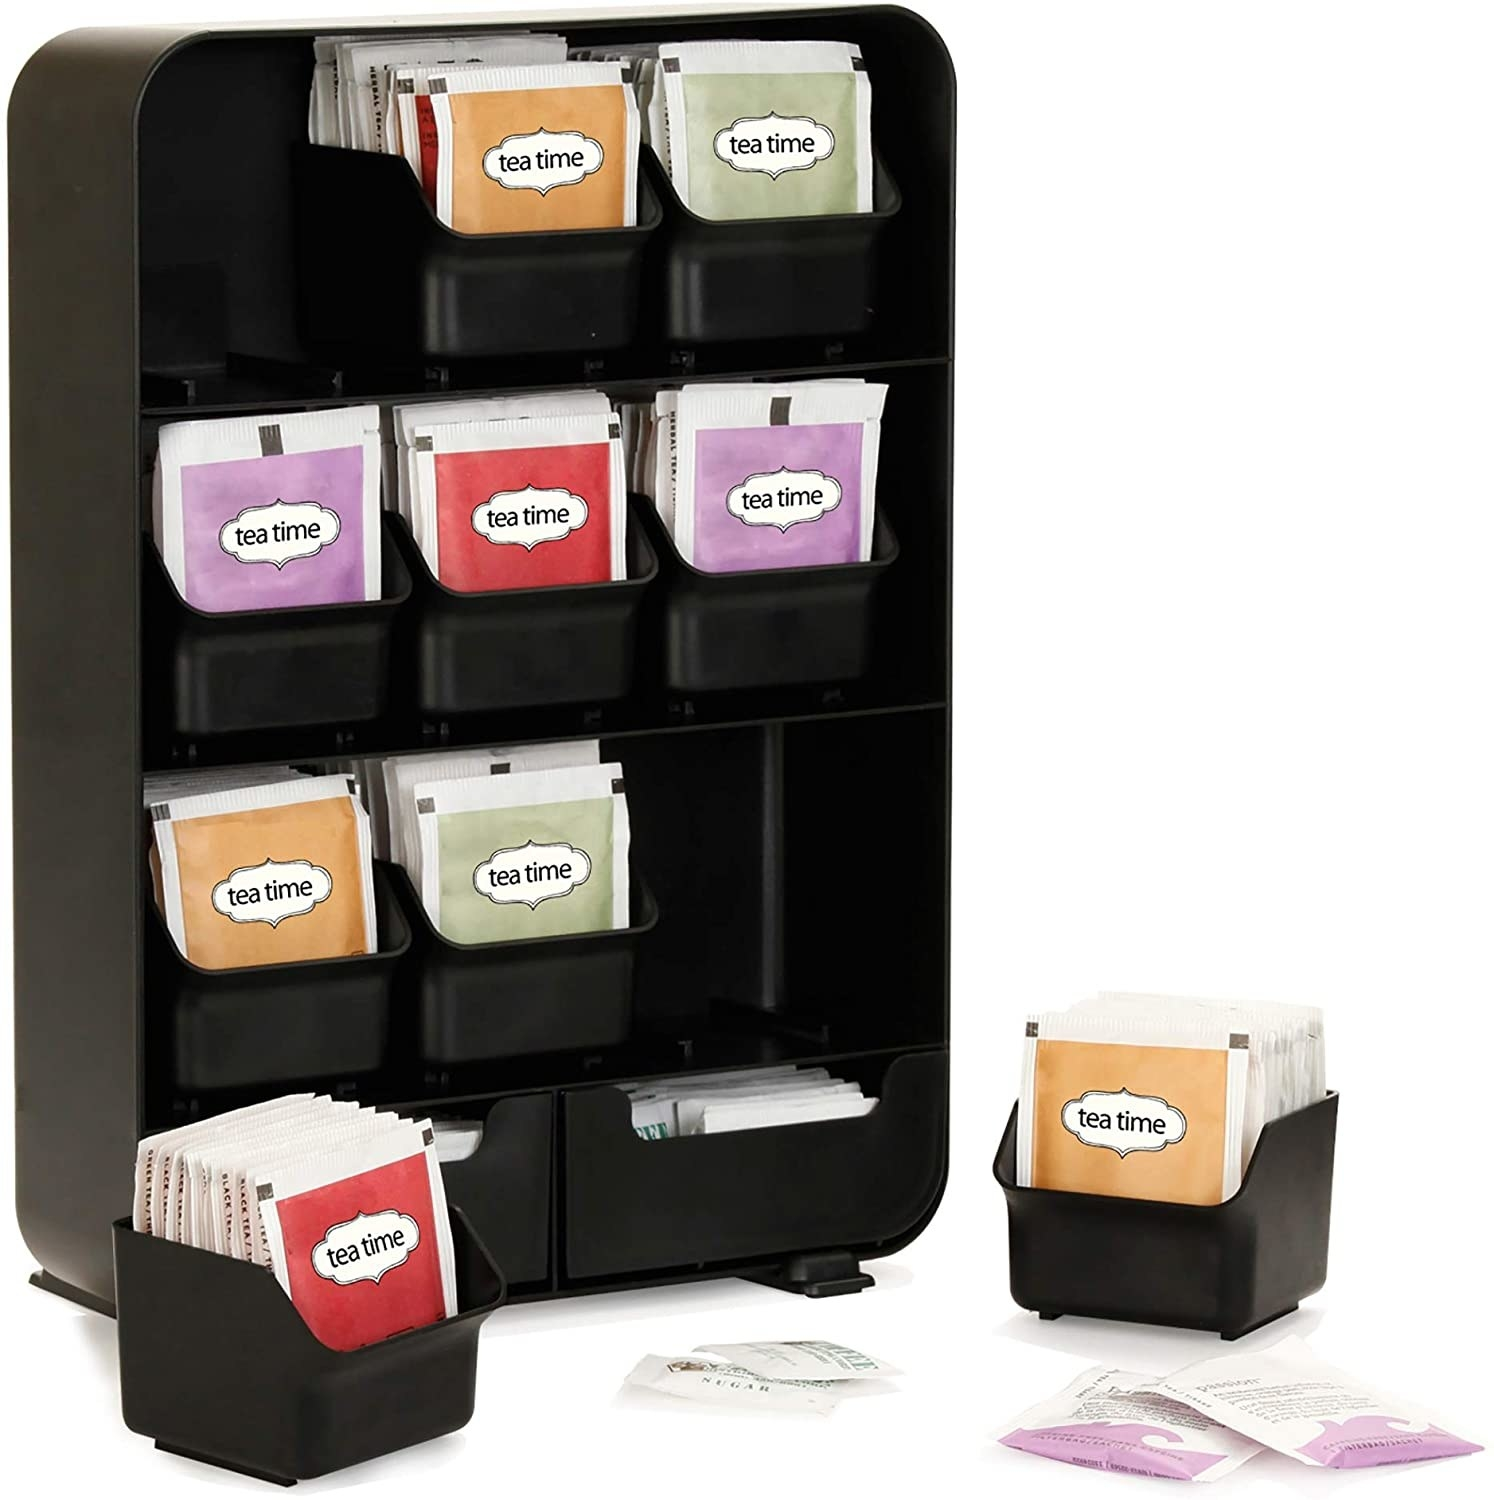 The tea organizer with several small drawers that each hold up to 20 bags of tea